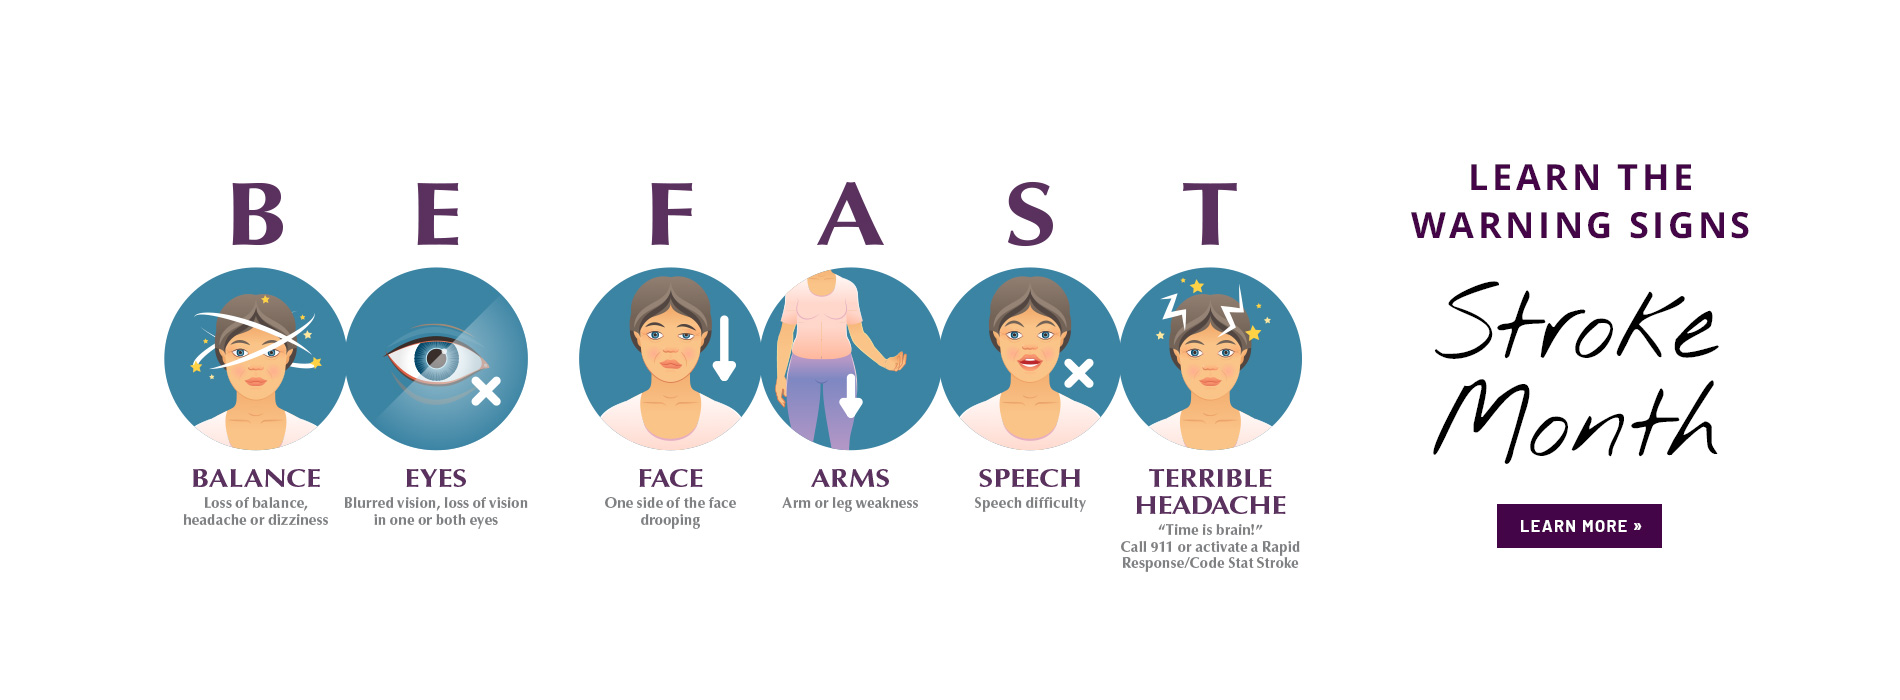 signs of stroke